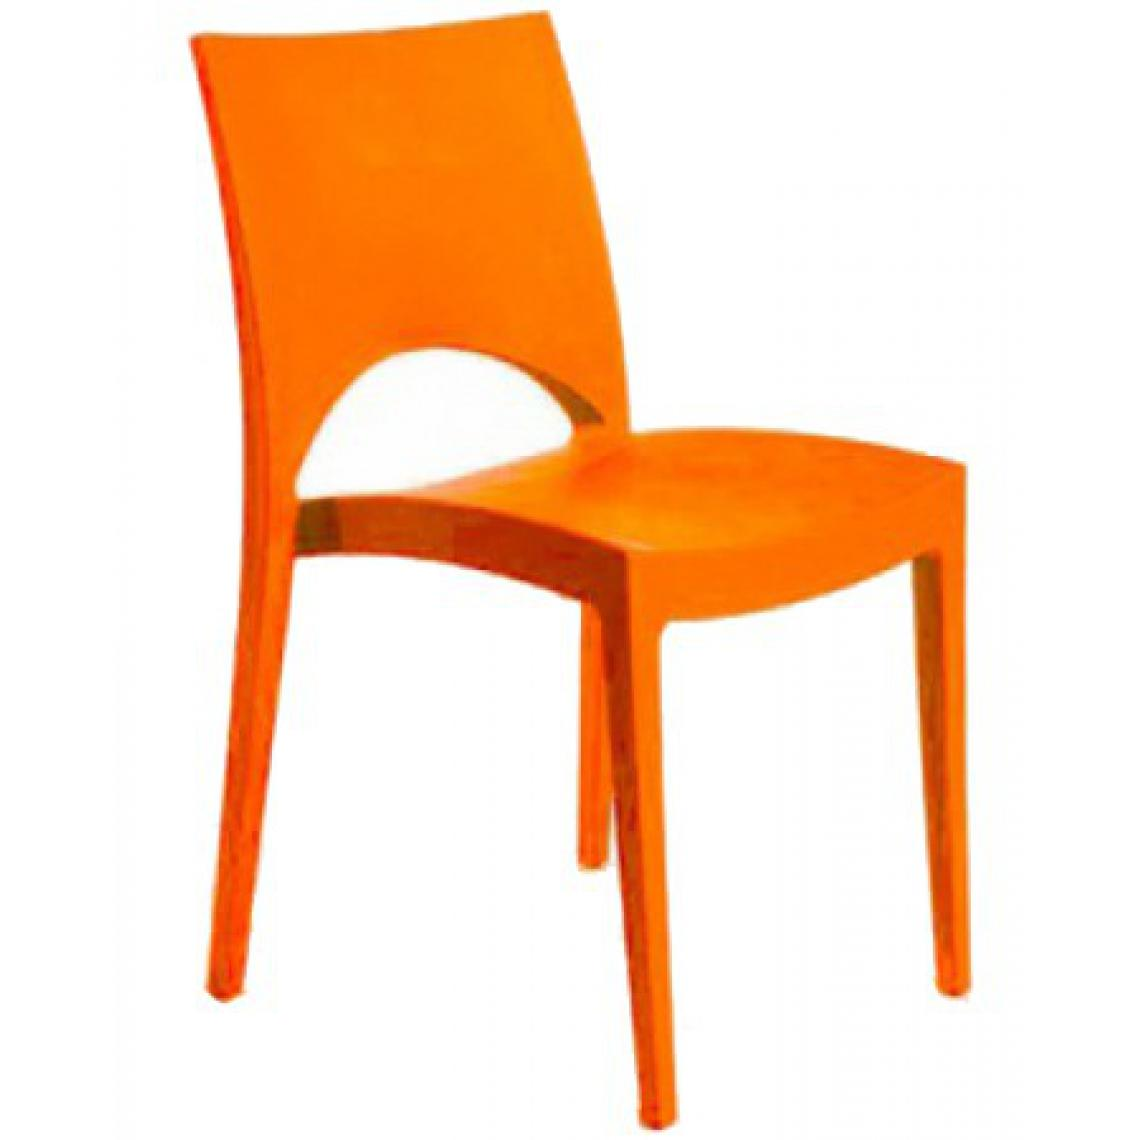 Chaise Design Orange VENISE